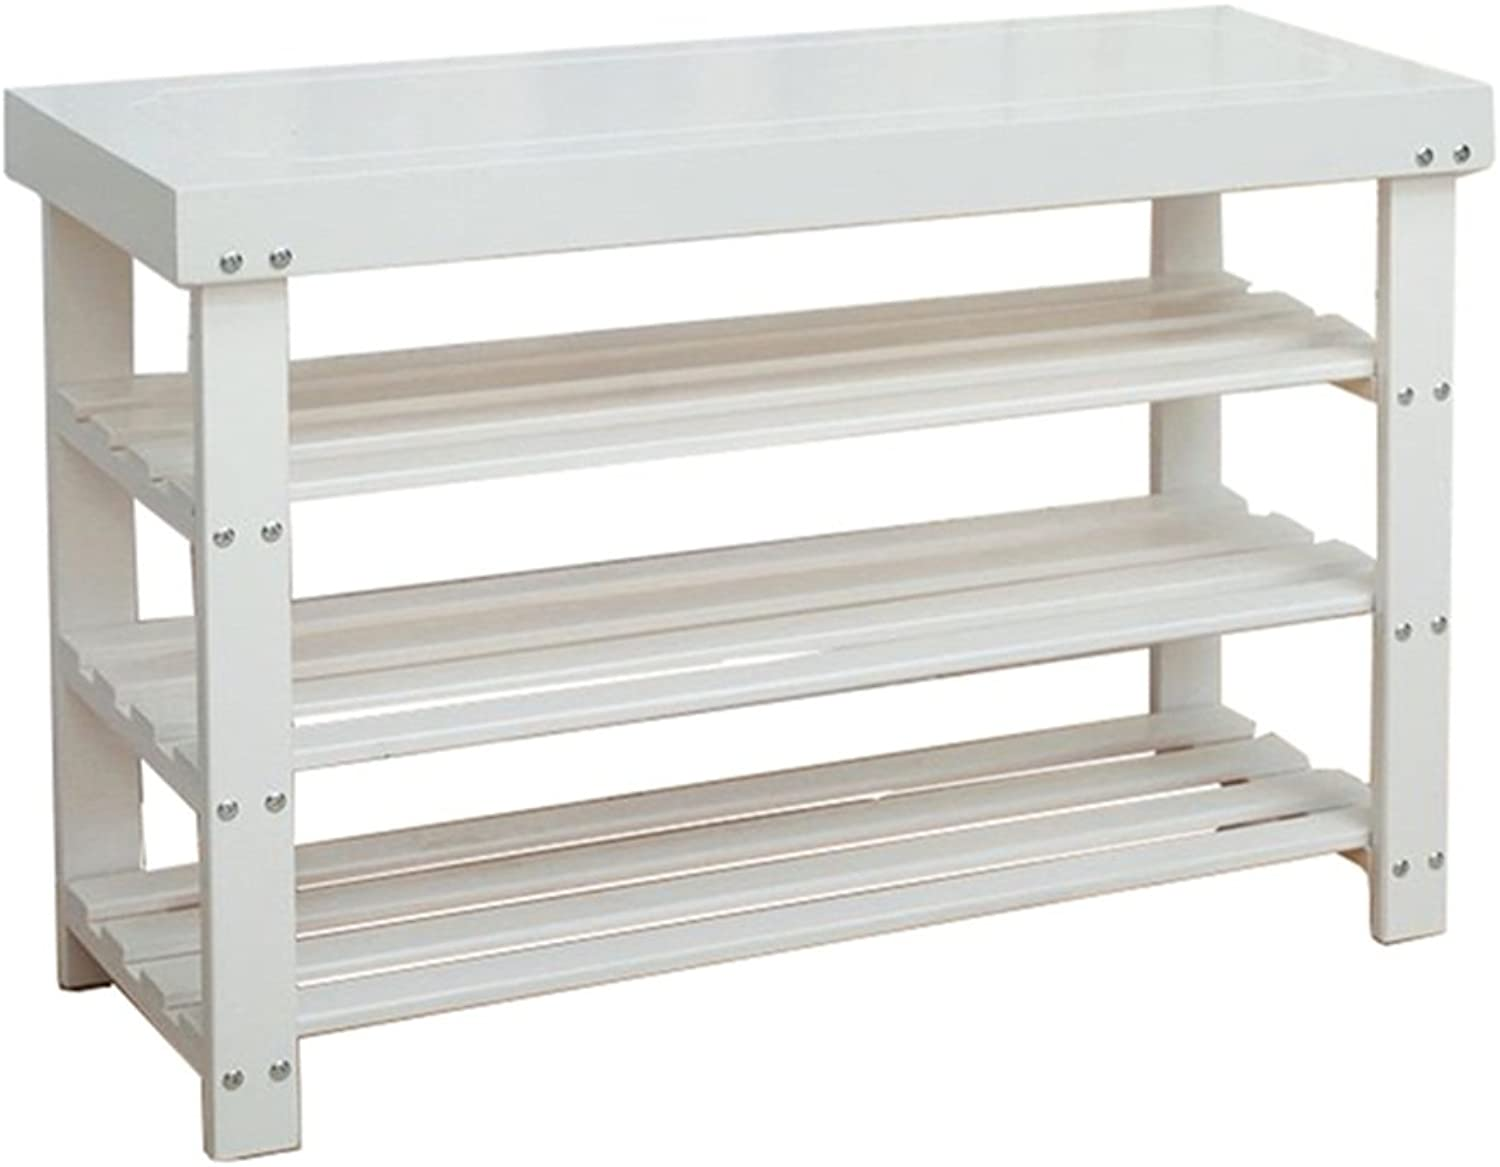 shoes Rack Organizer Storage, Solid Wood shoes Bench, shoes Cabinet, Storage Storage Stool, European shoes Rack.